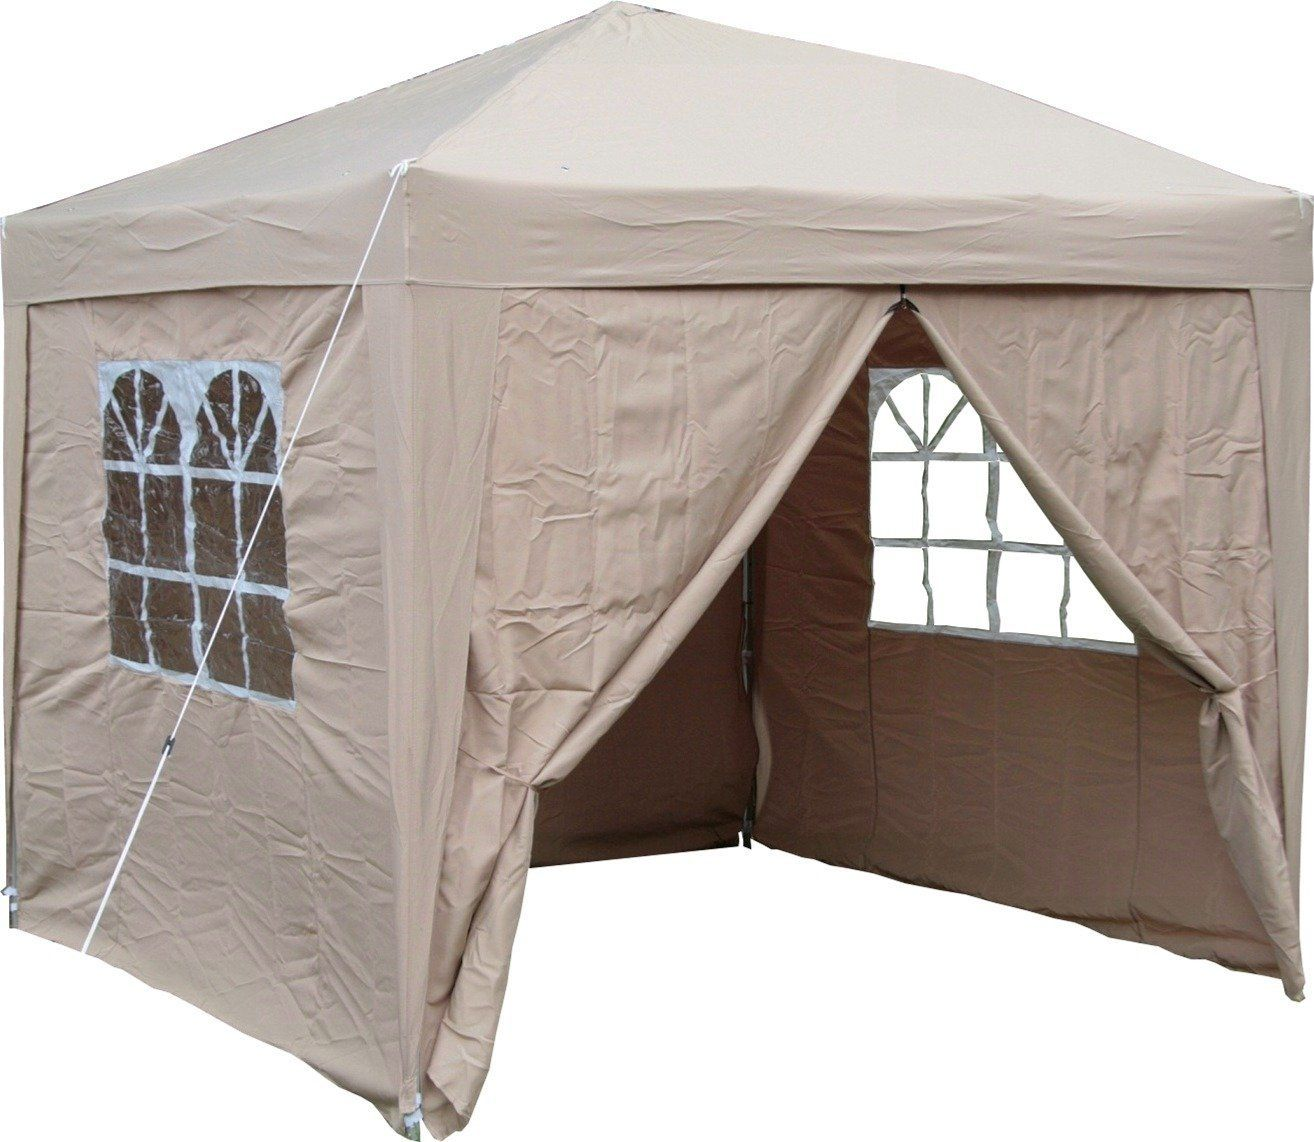 Airwave 2.5x2.5mtr Pop Up Waterproof Gazebo In Beige With